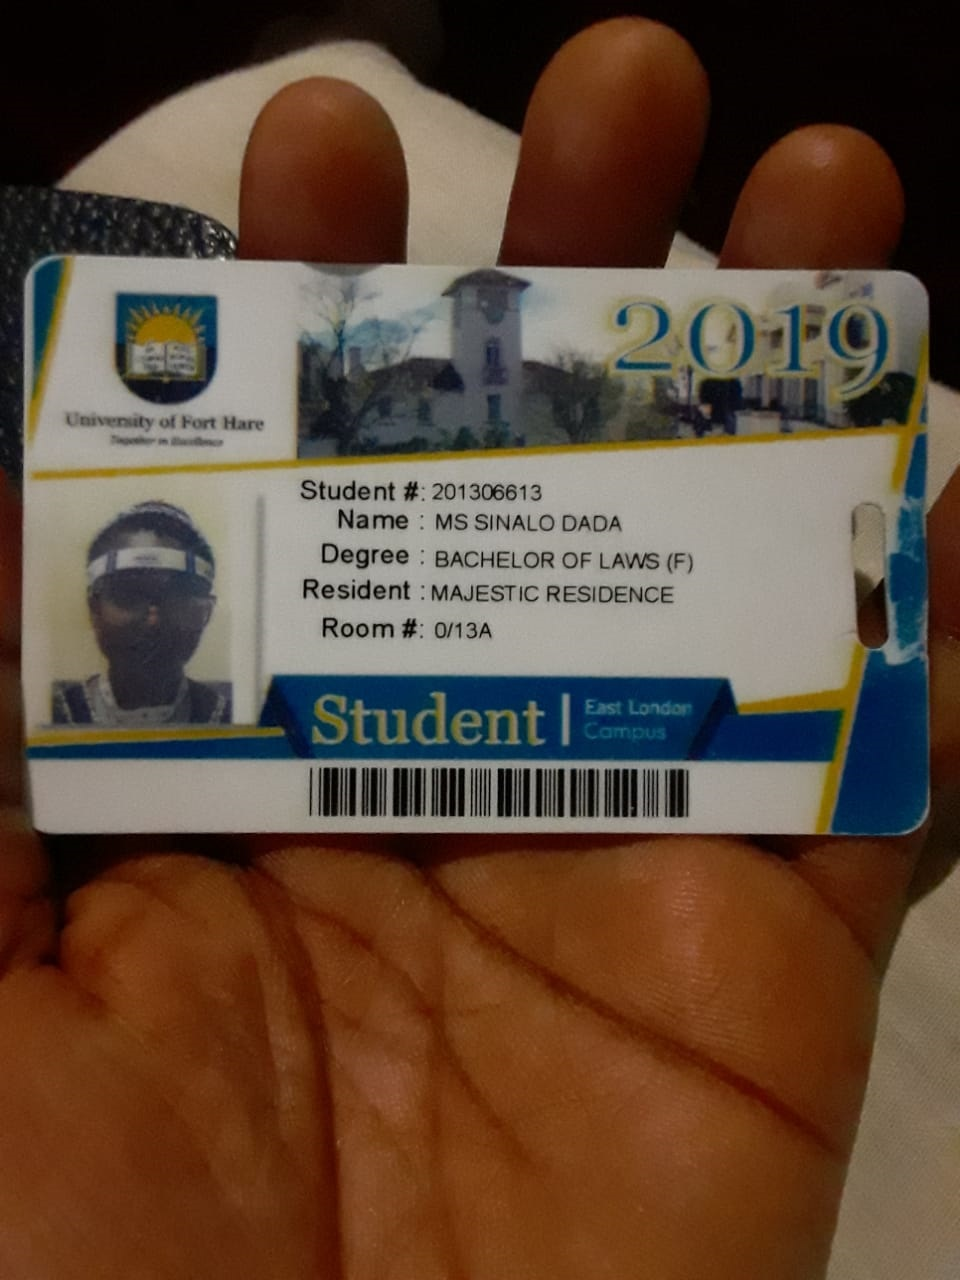 Sinalo Dada student card from UFH